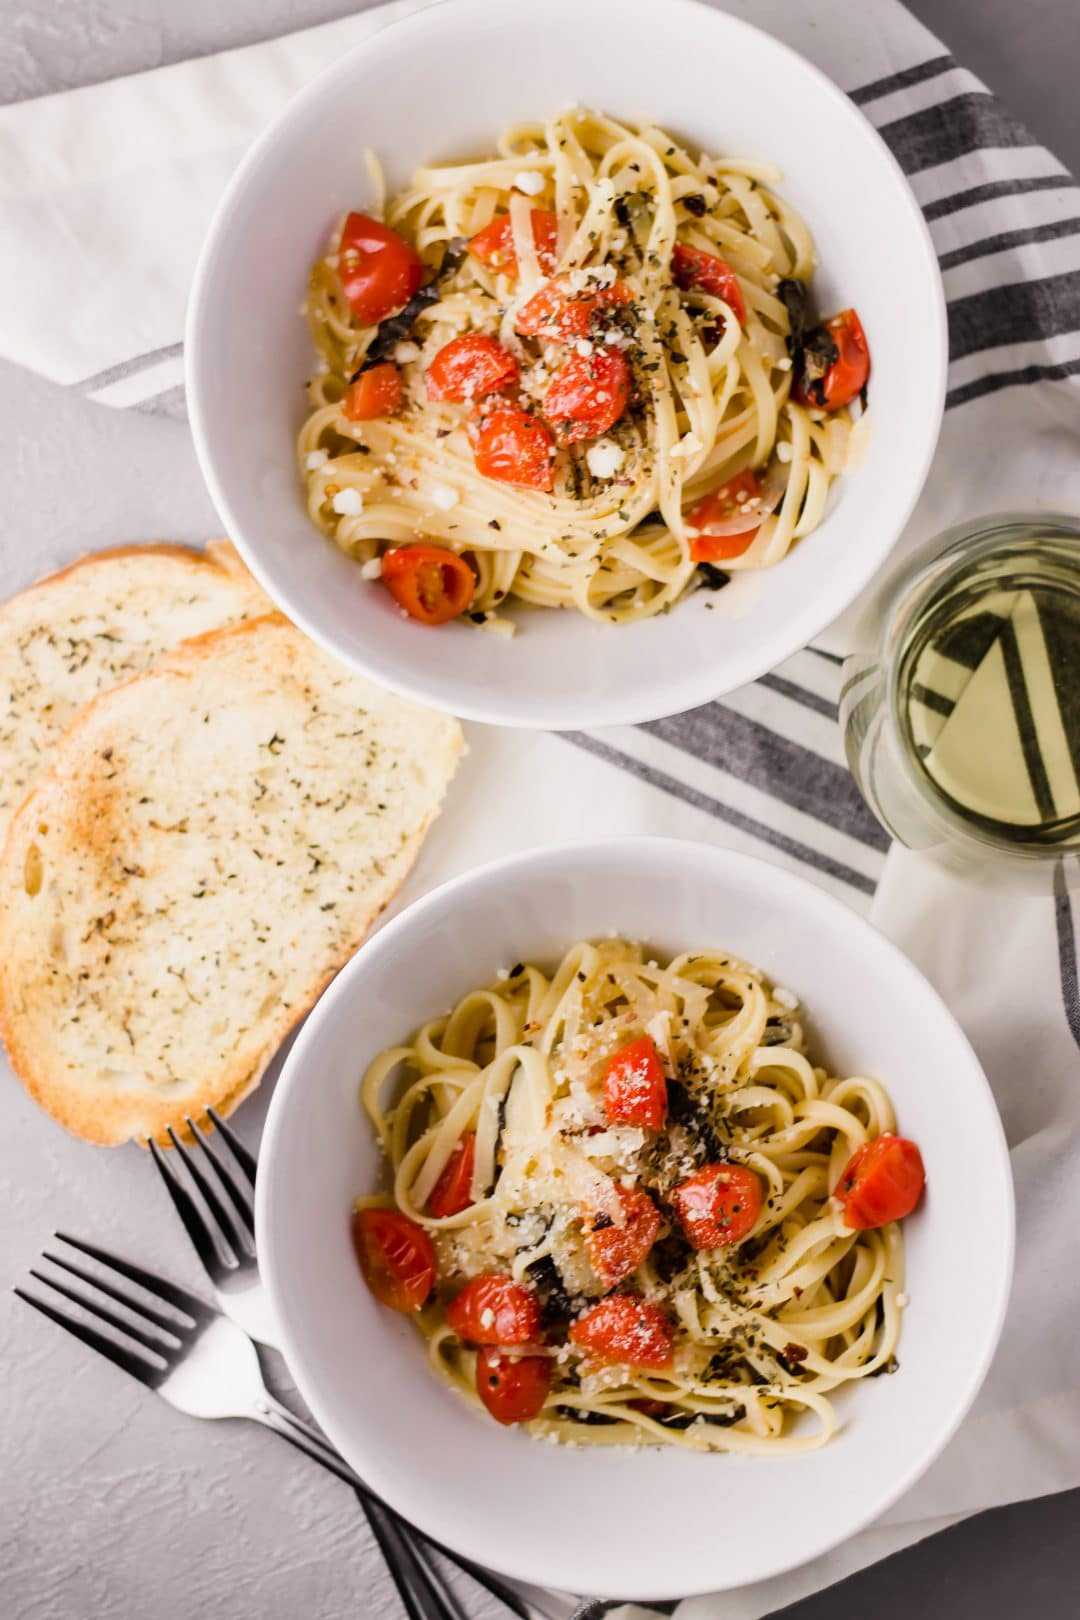 Martha Stewart One-Pan Pasta is a quick and easy recipe that combines pasta, tomatoes, basil, and garlic for a filling and delicious meal. simplylakita.com #pasta